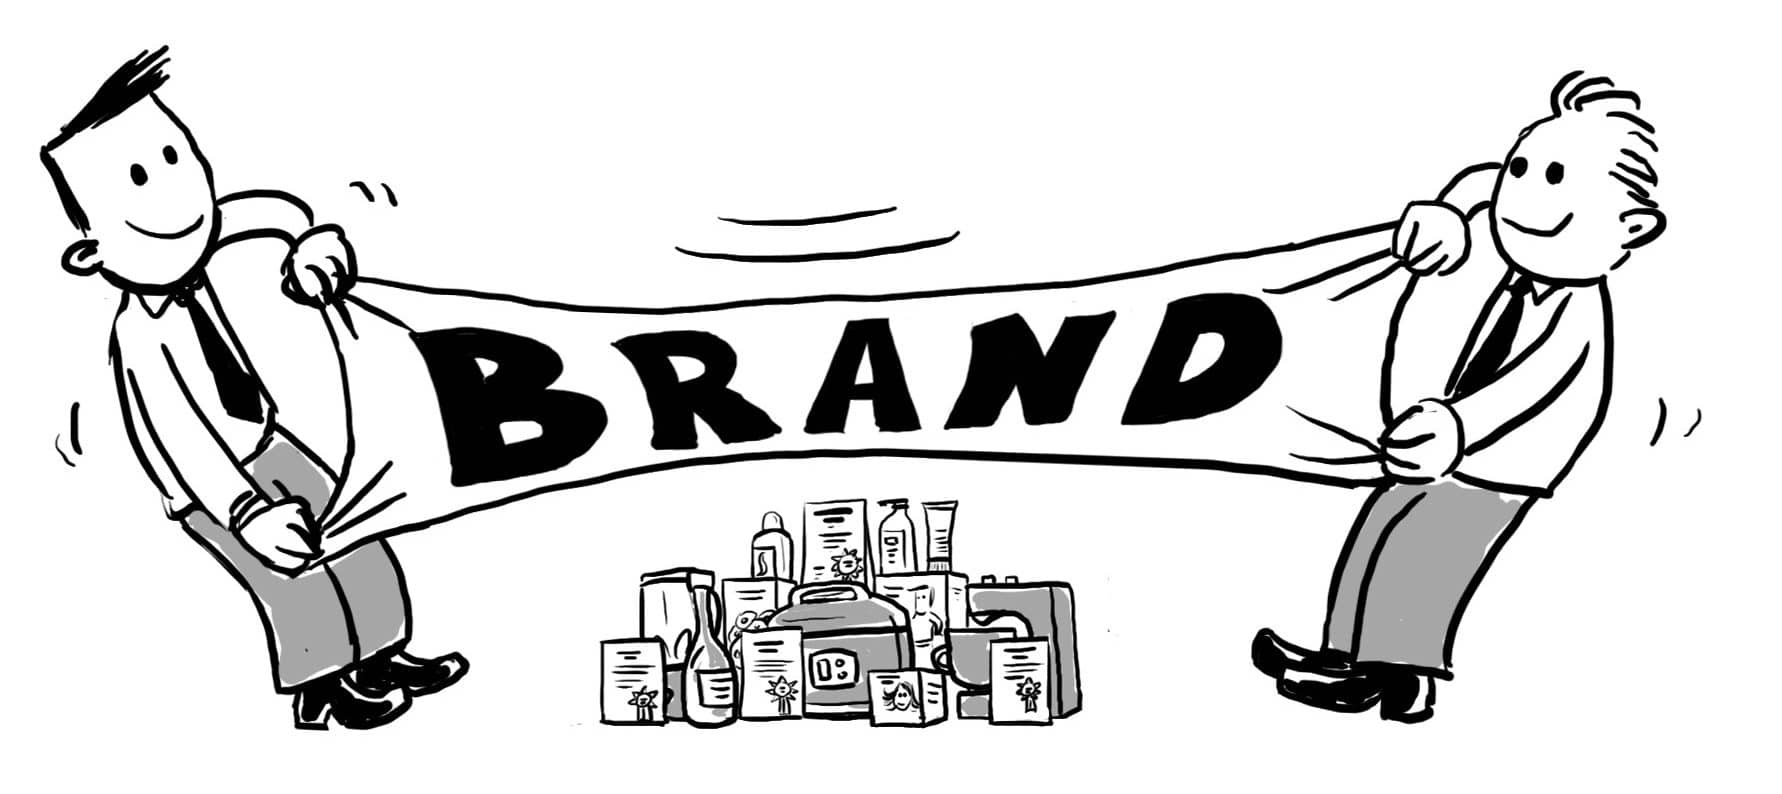 Brand portfolio management doesnt always mean stretching your brand